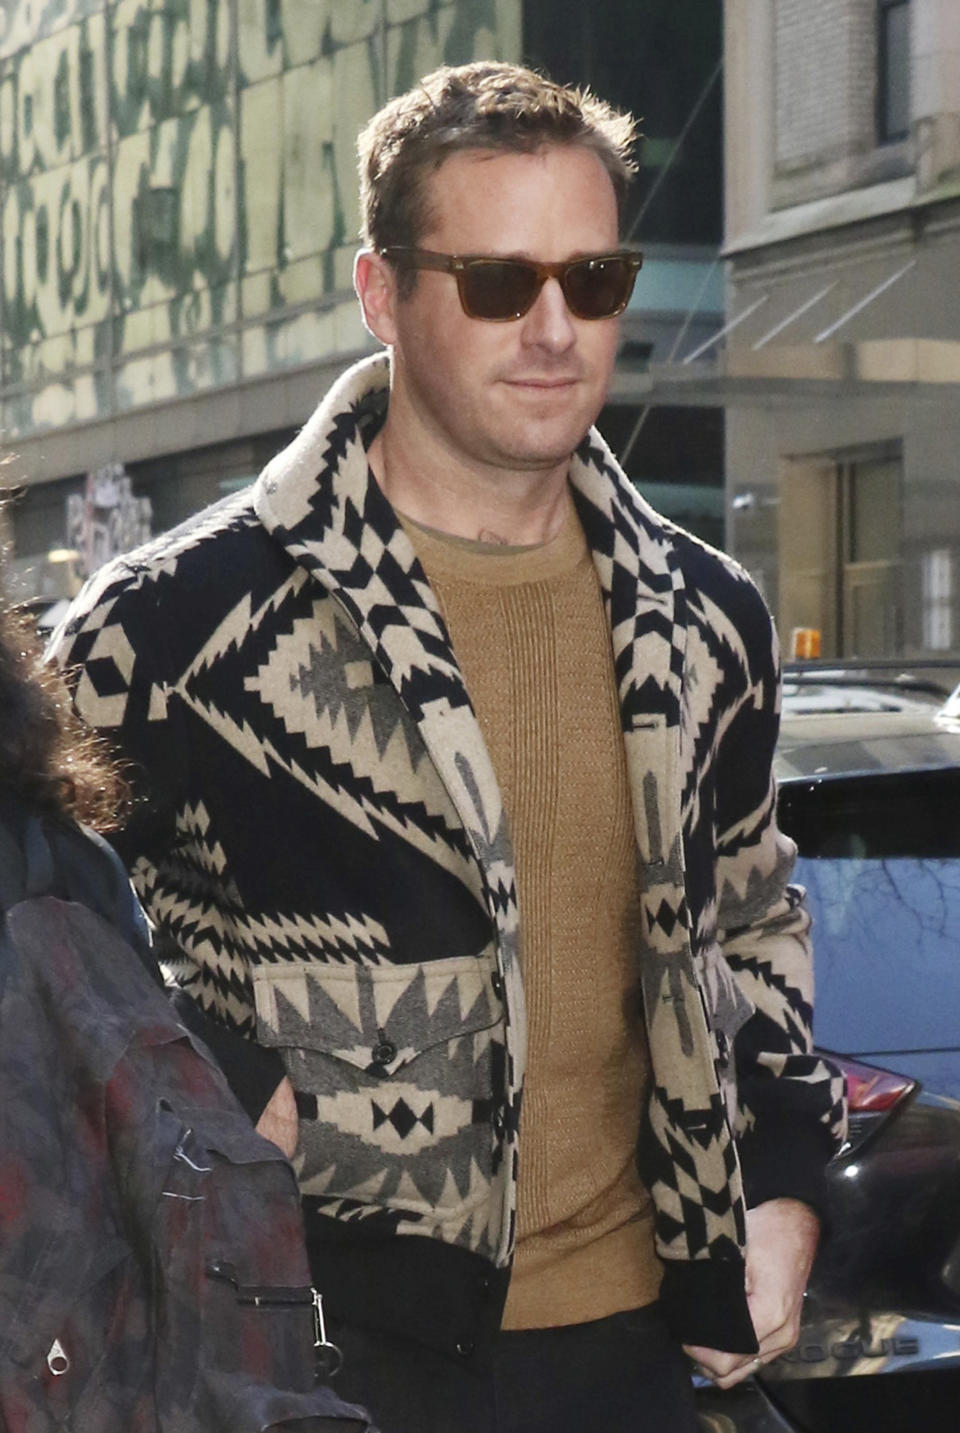 NEW YORK, NY- March 09: Armie Hammer seen exiting NBC's Today in New York City on March 09, 2020. Credit: RW/MediaPunch /IPX